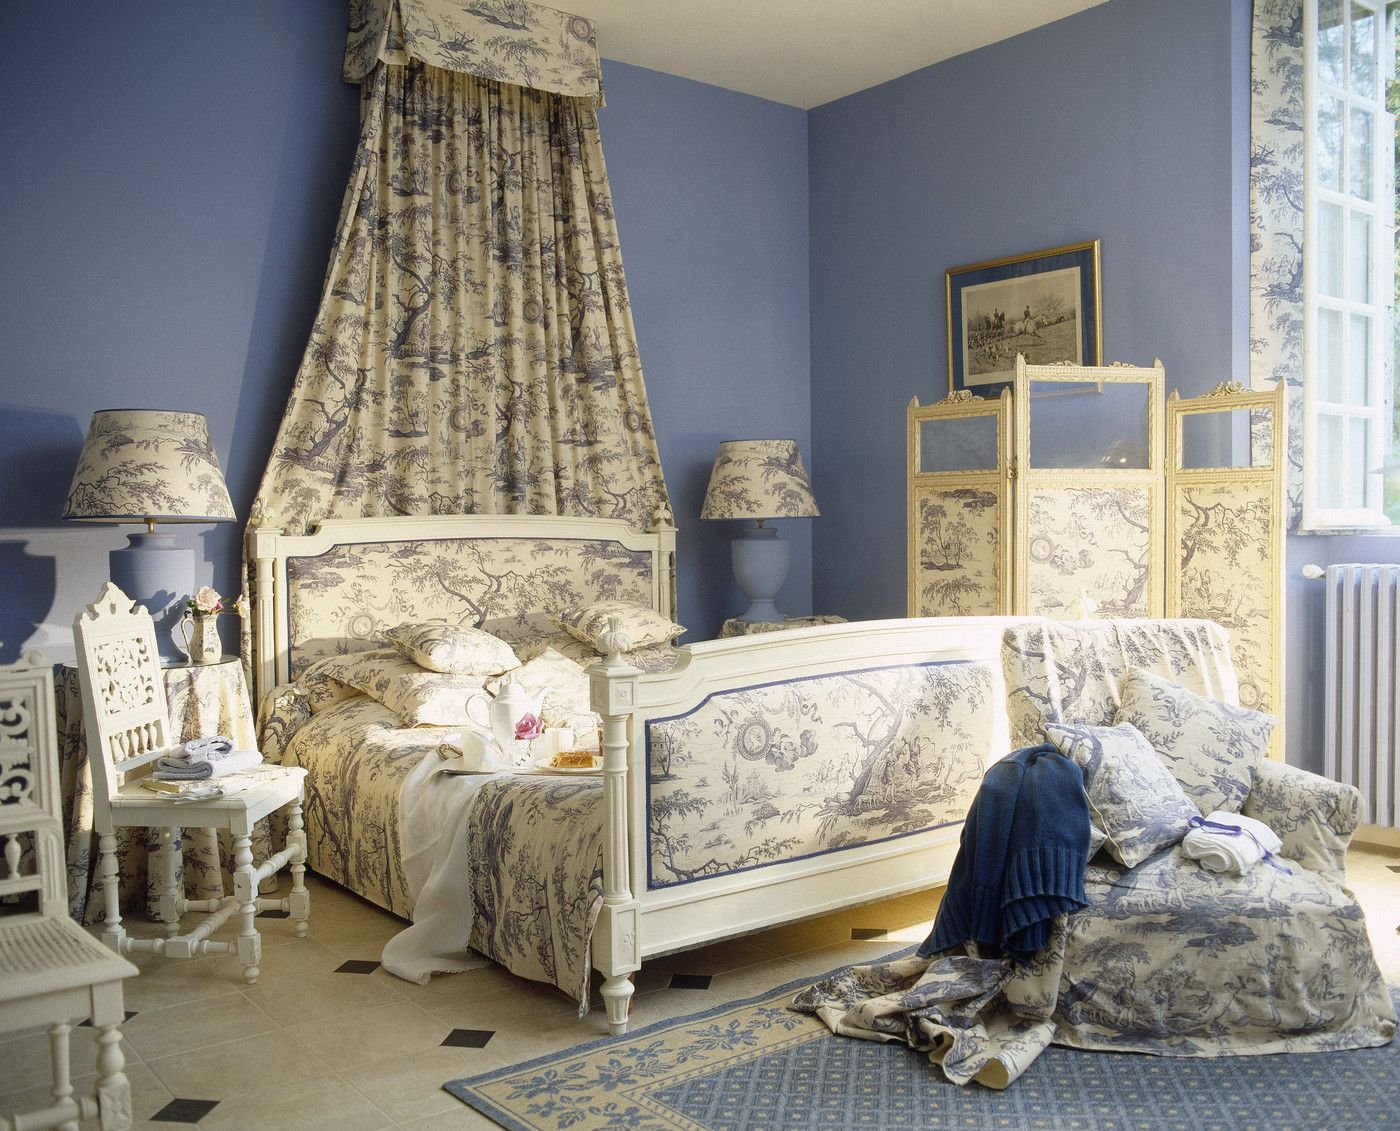 Stanze Da Letto Stile Country : French country bedroom toile de jouy paese camere